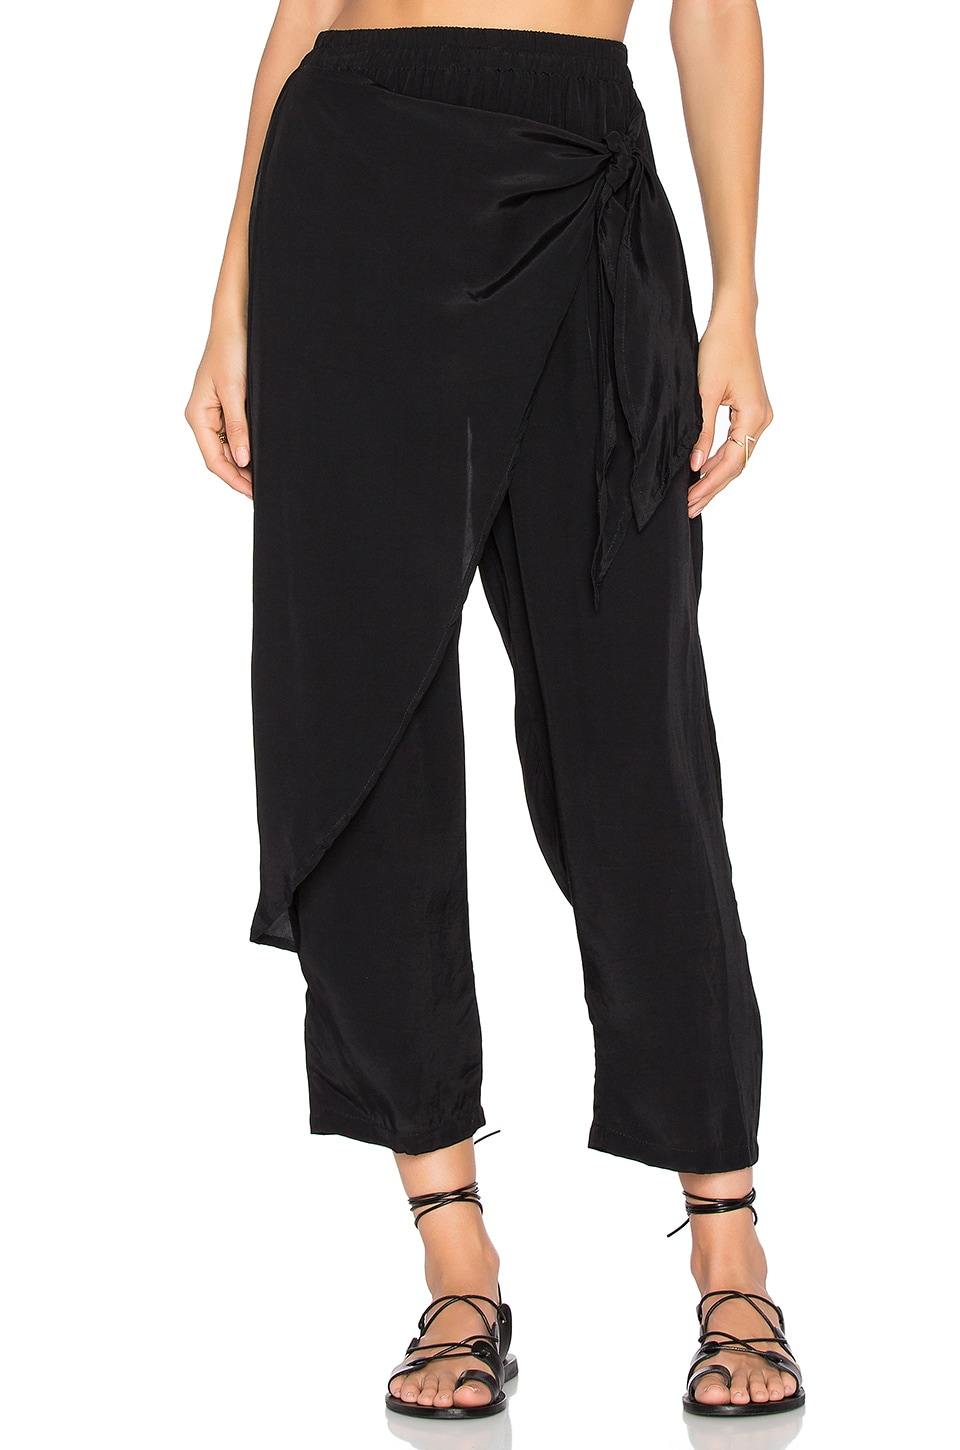 FAITHFULL THE BRAND x REVOLVE Lagoon Pants in Black